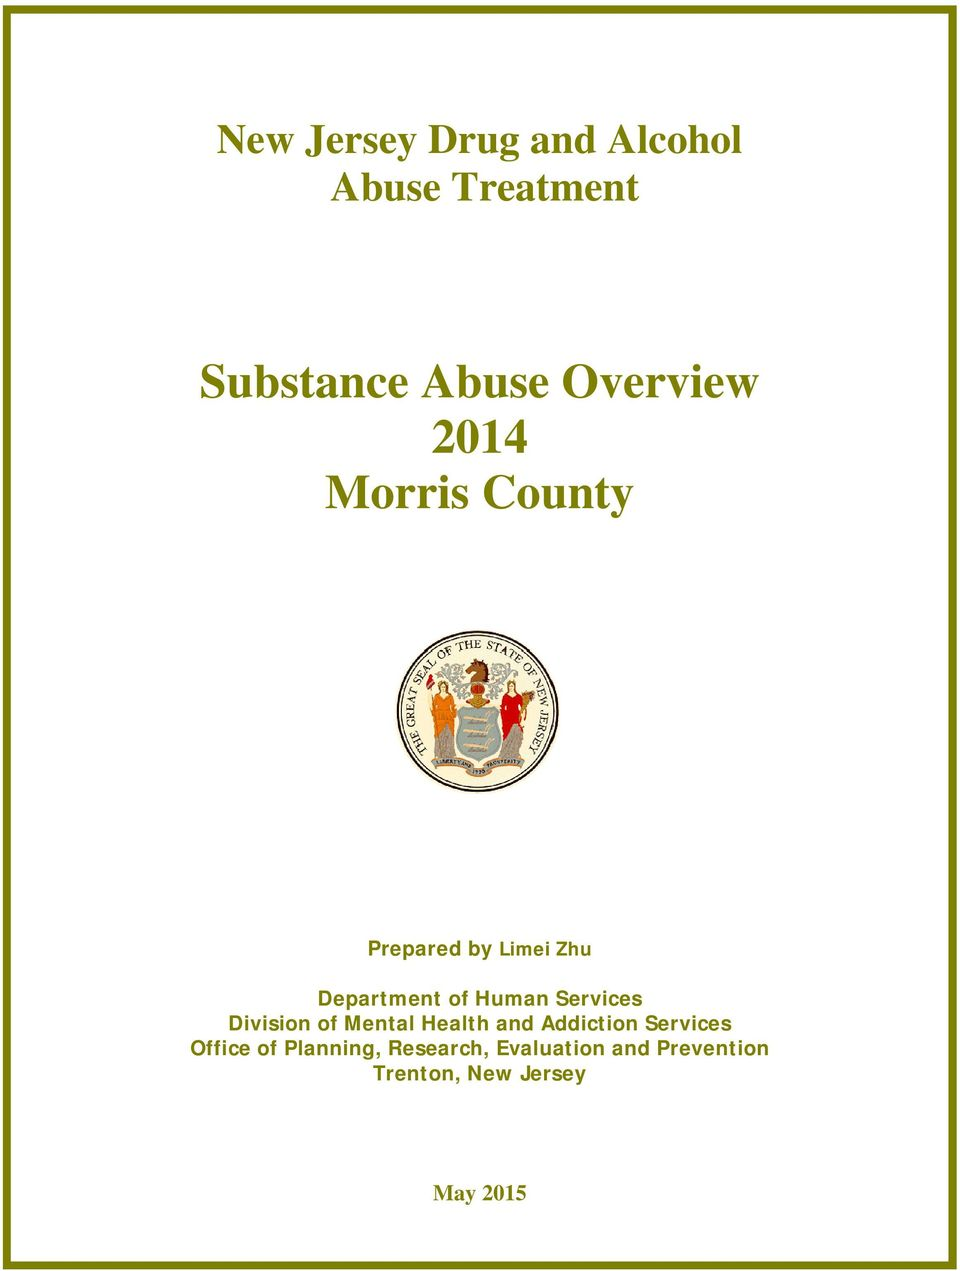 Human Services Division of Mental Health and Addiction Services